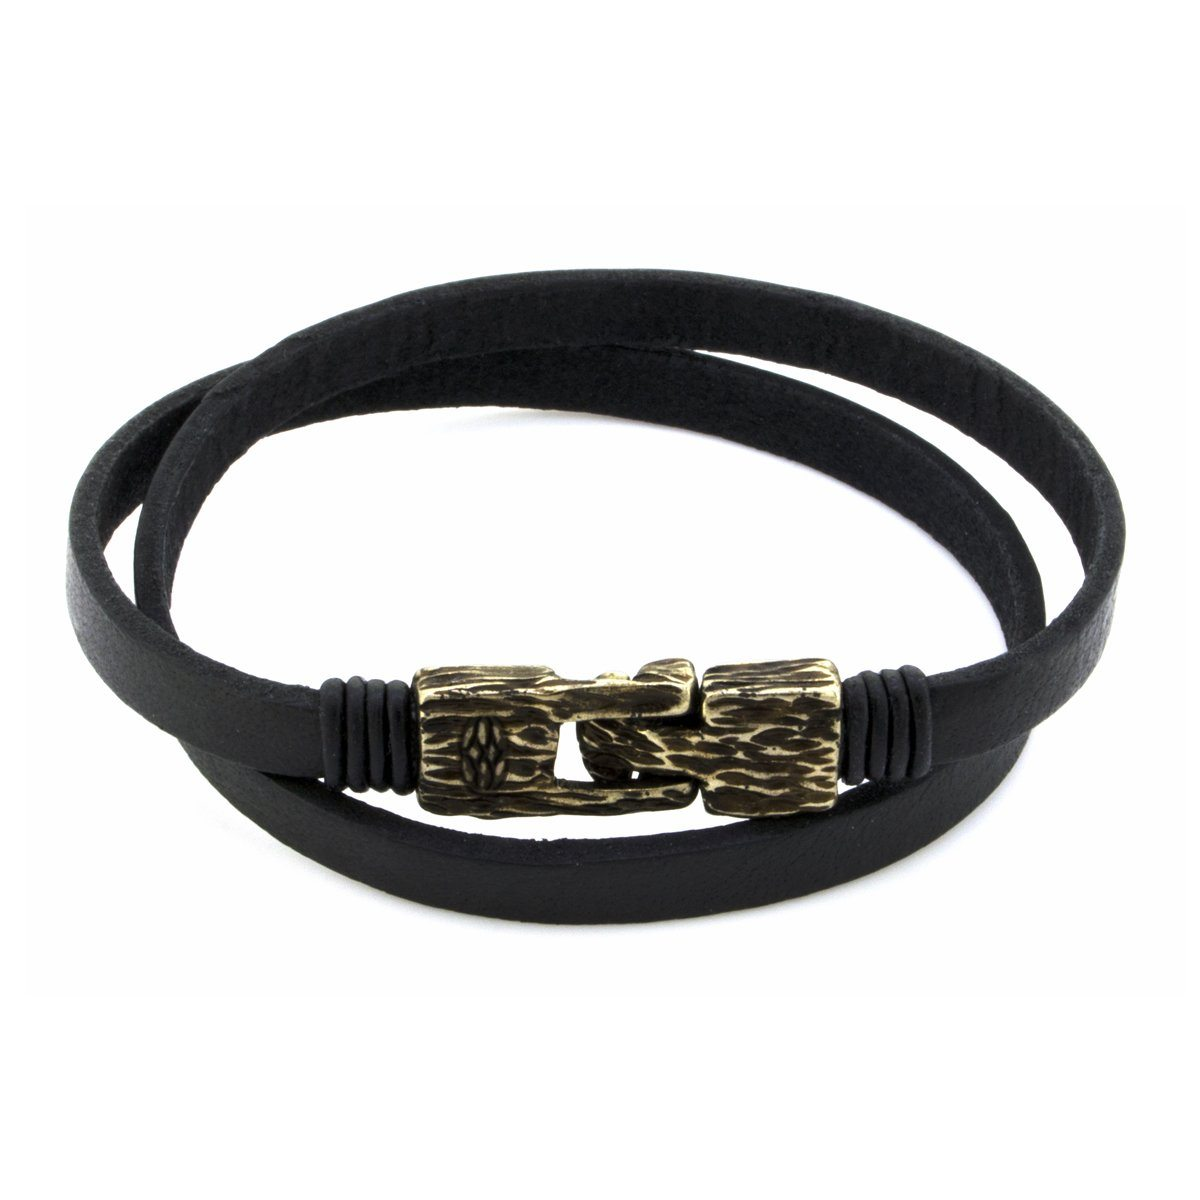 Pulsera - Vinci Black 6 MM Vintage